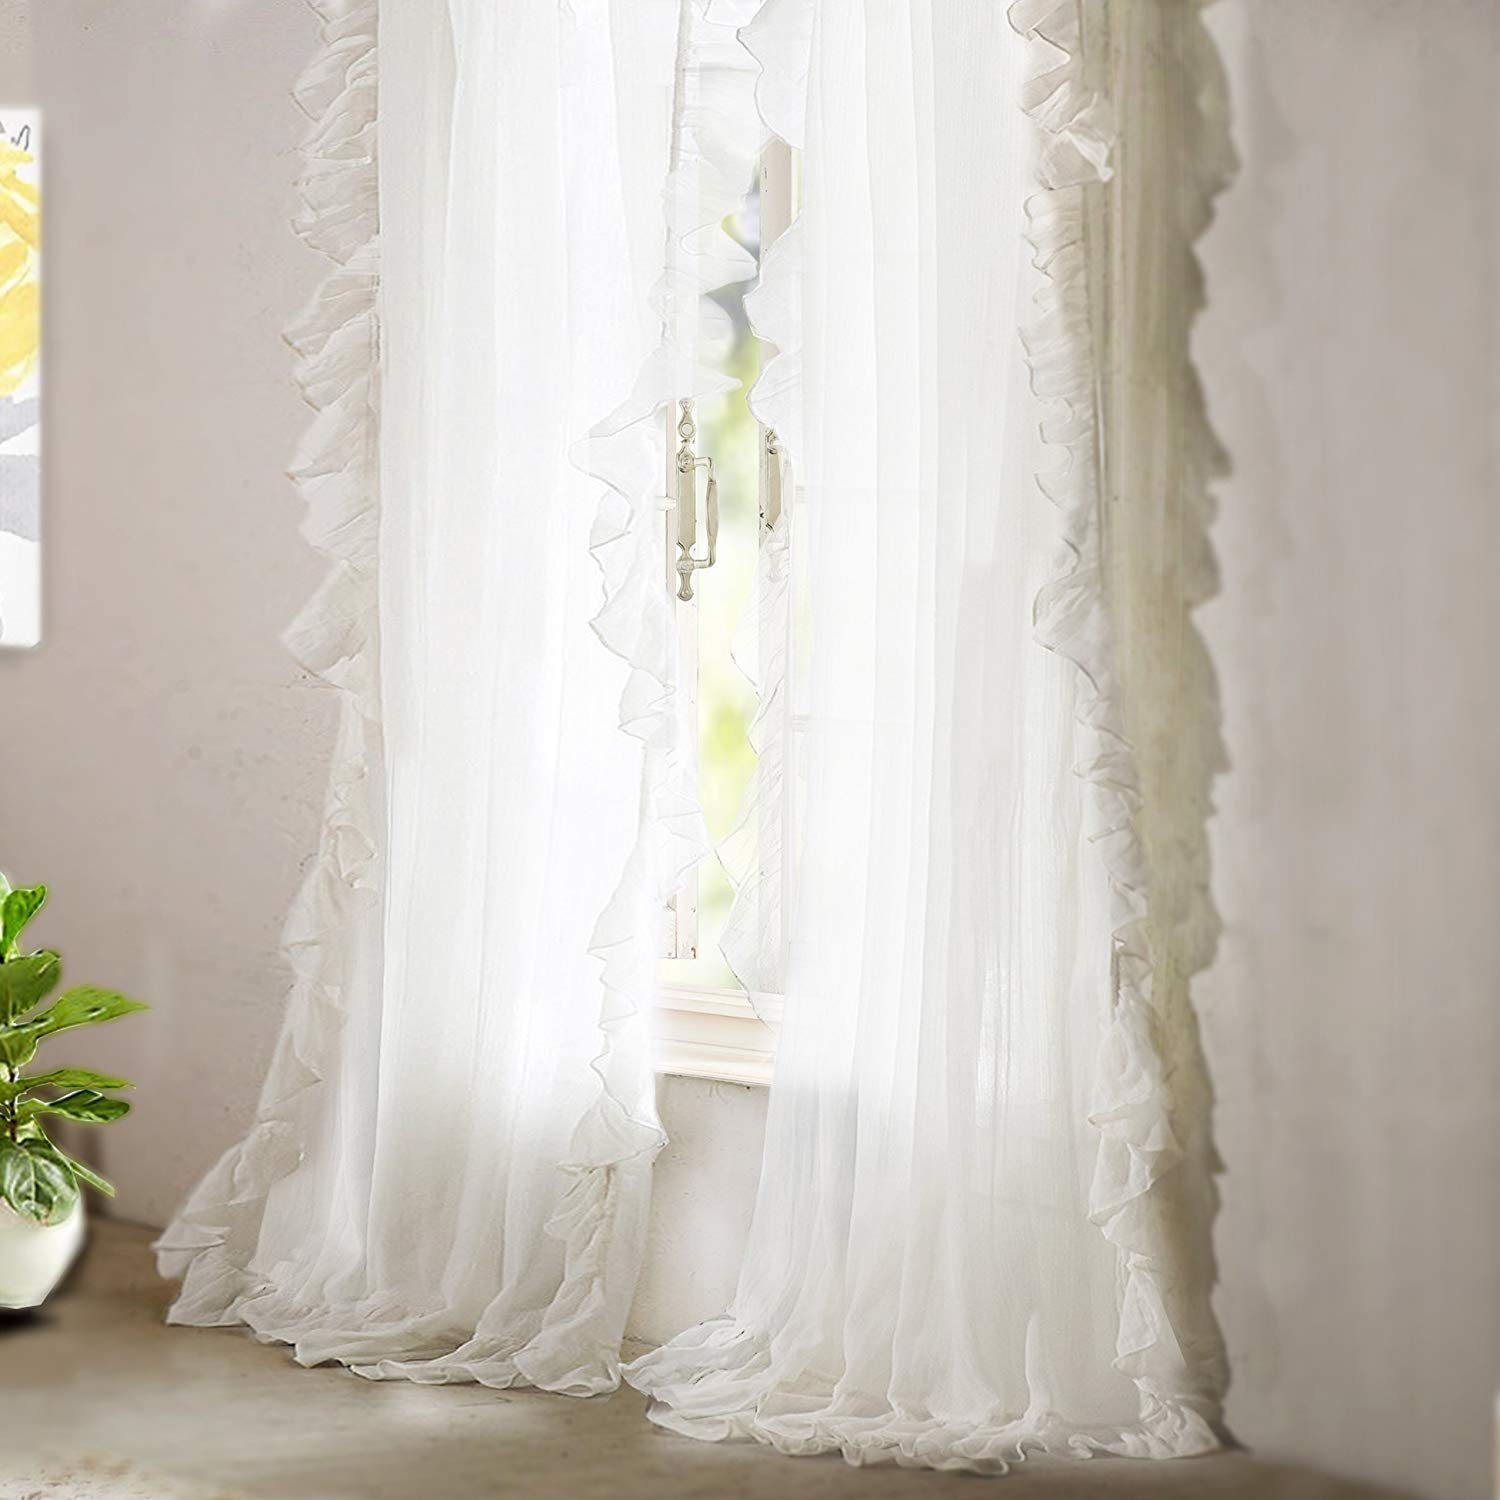 KALENDS Sheer Curtain Set for Living Room Bedroom Rod Pocket Tulle Fabric Ruffle White Window Treatment - 52'' W x 96'' L - (2 Panels)